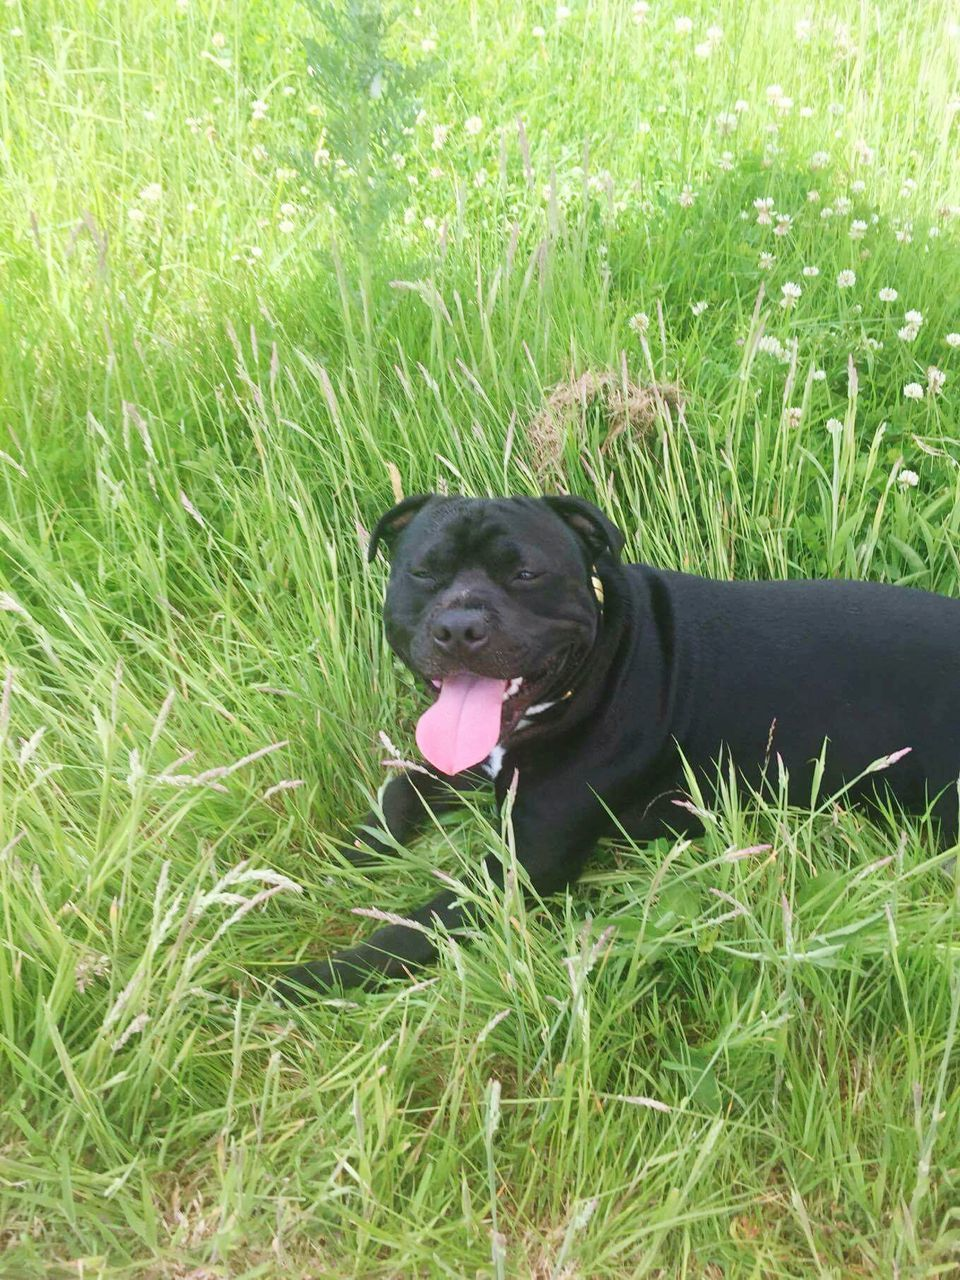 dog, grass, pets, one animal, domestic animals, animal themes, sticking out tongue, mammal, green color, black color, growth, animal tongue, field, panting, nature, black labrador, outdoors, no people, day, close-up